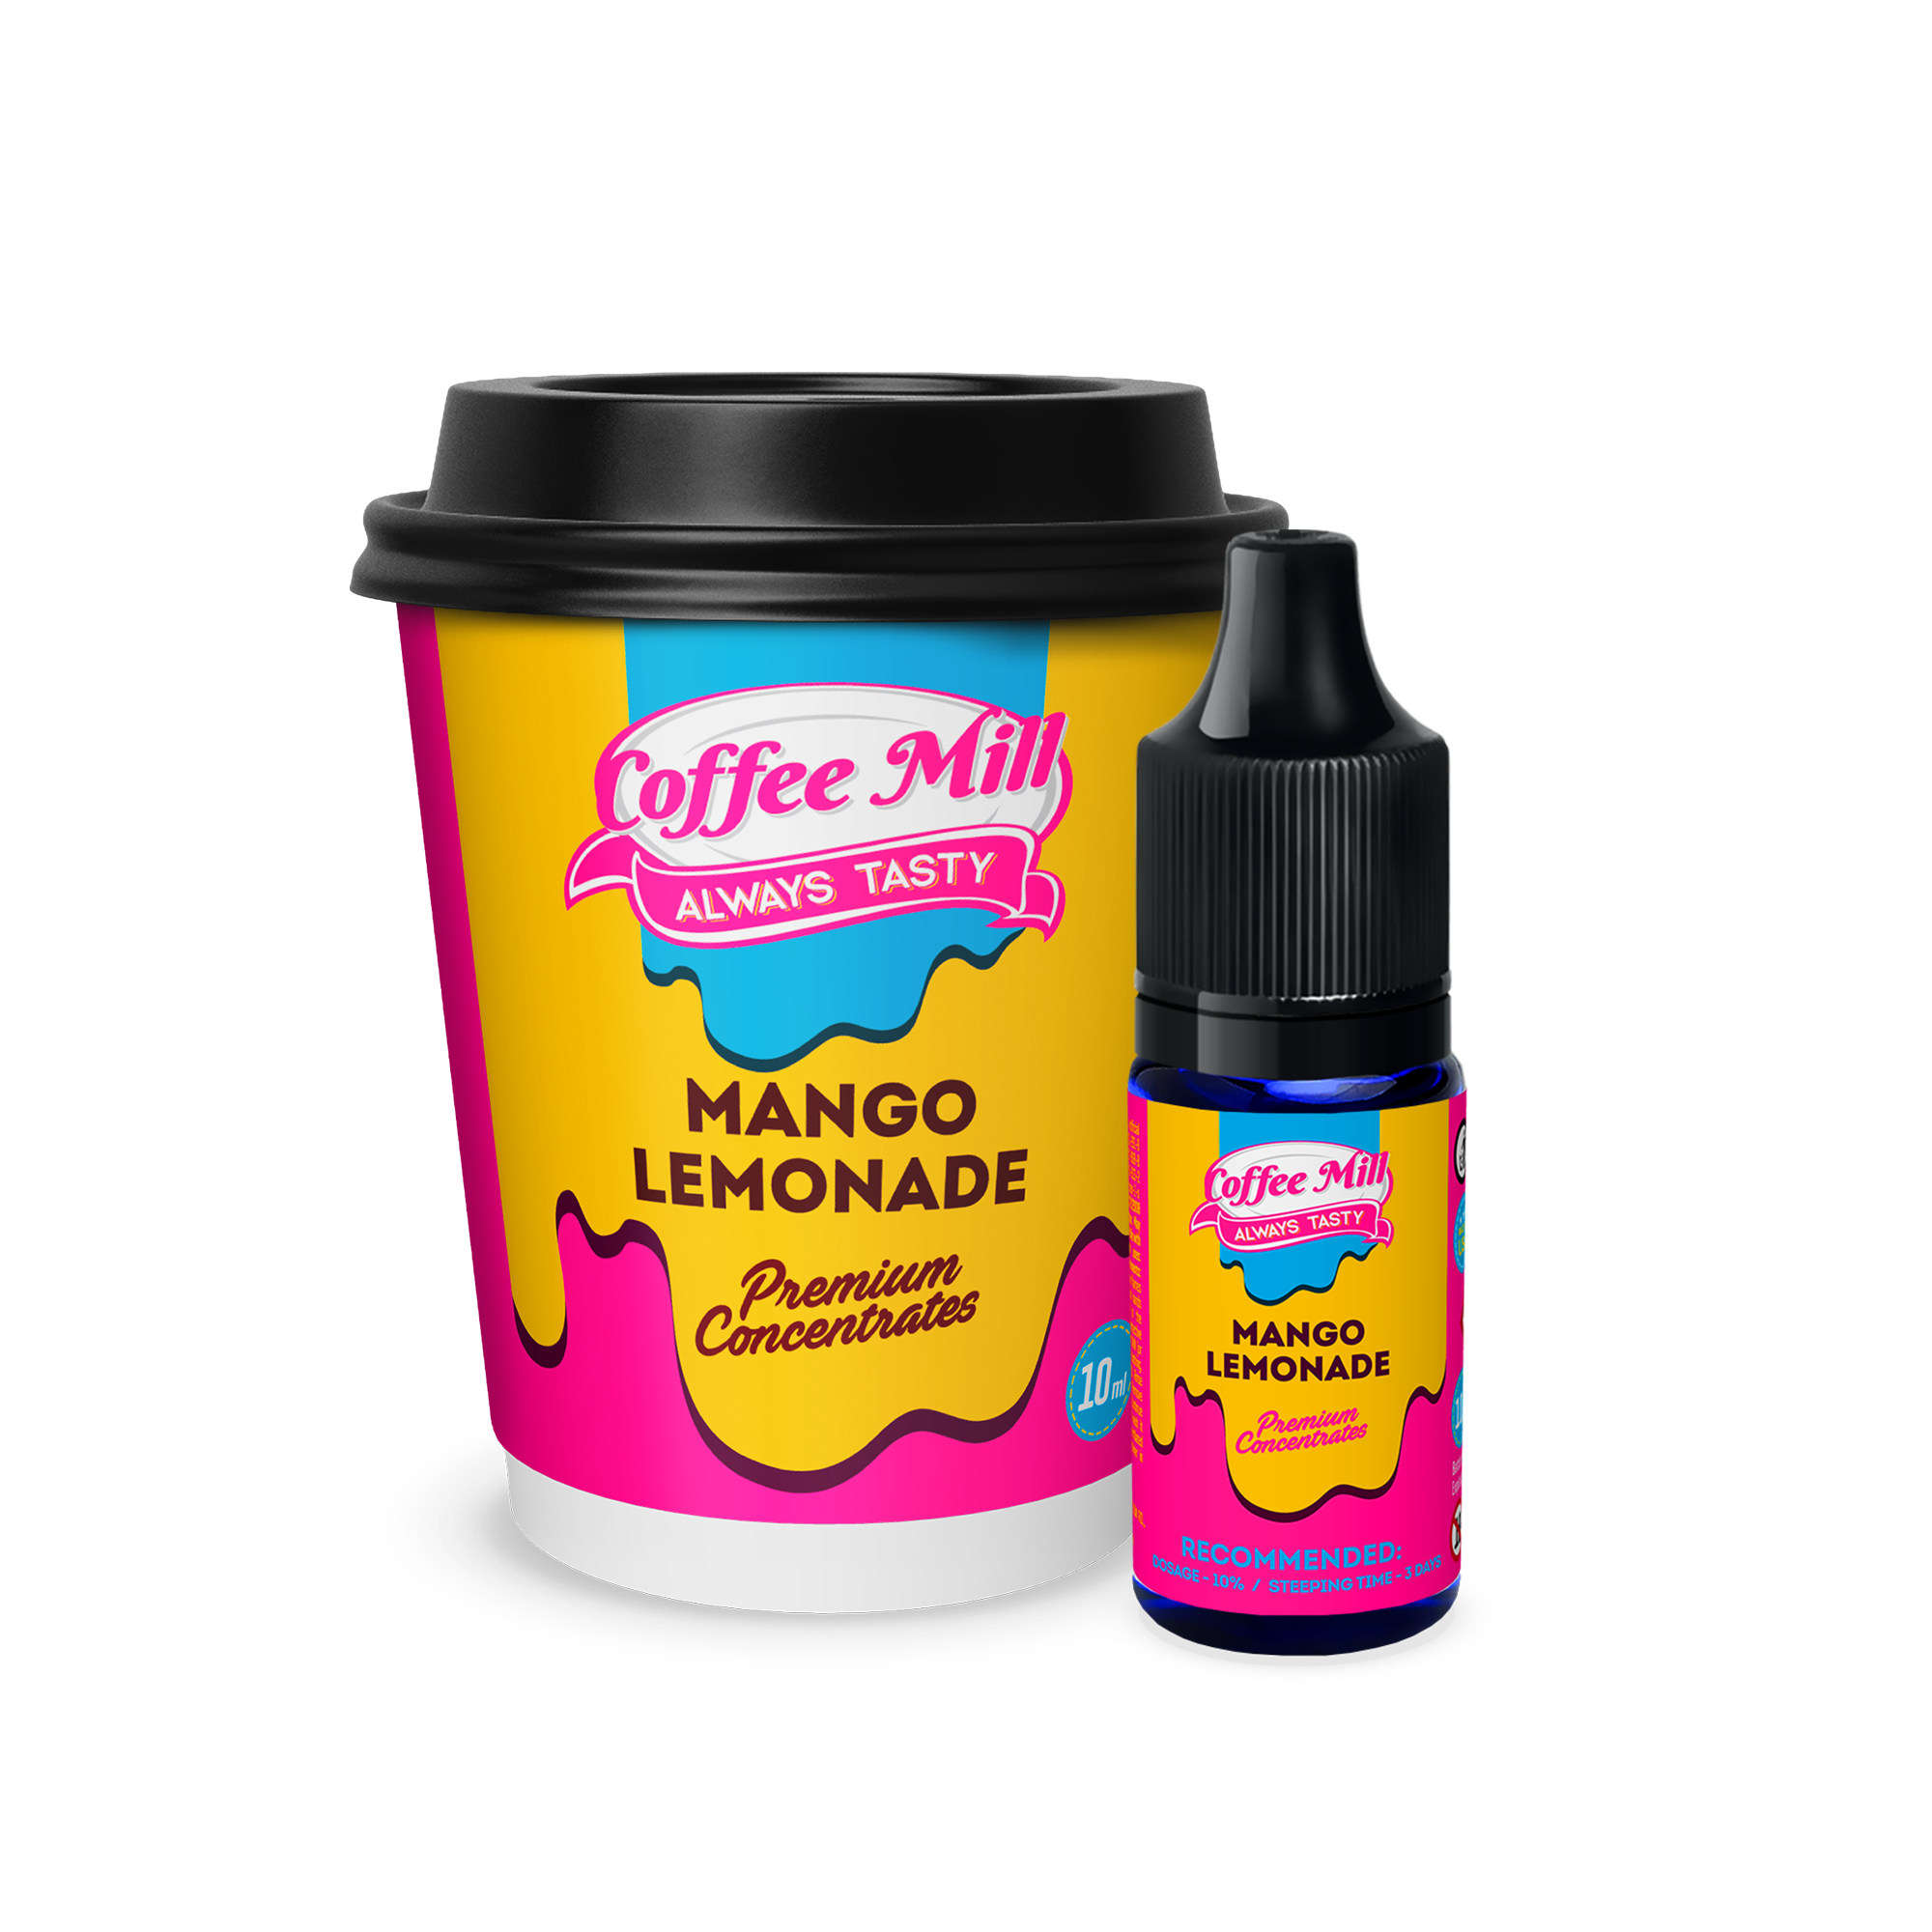 Mango Lemonade Flavour Concentrate by Coffee Mill